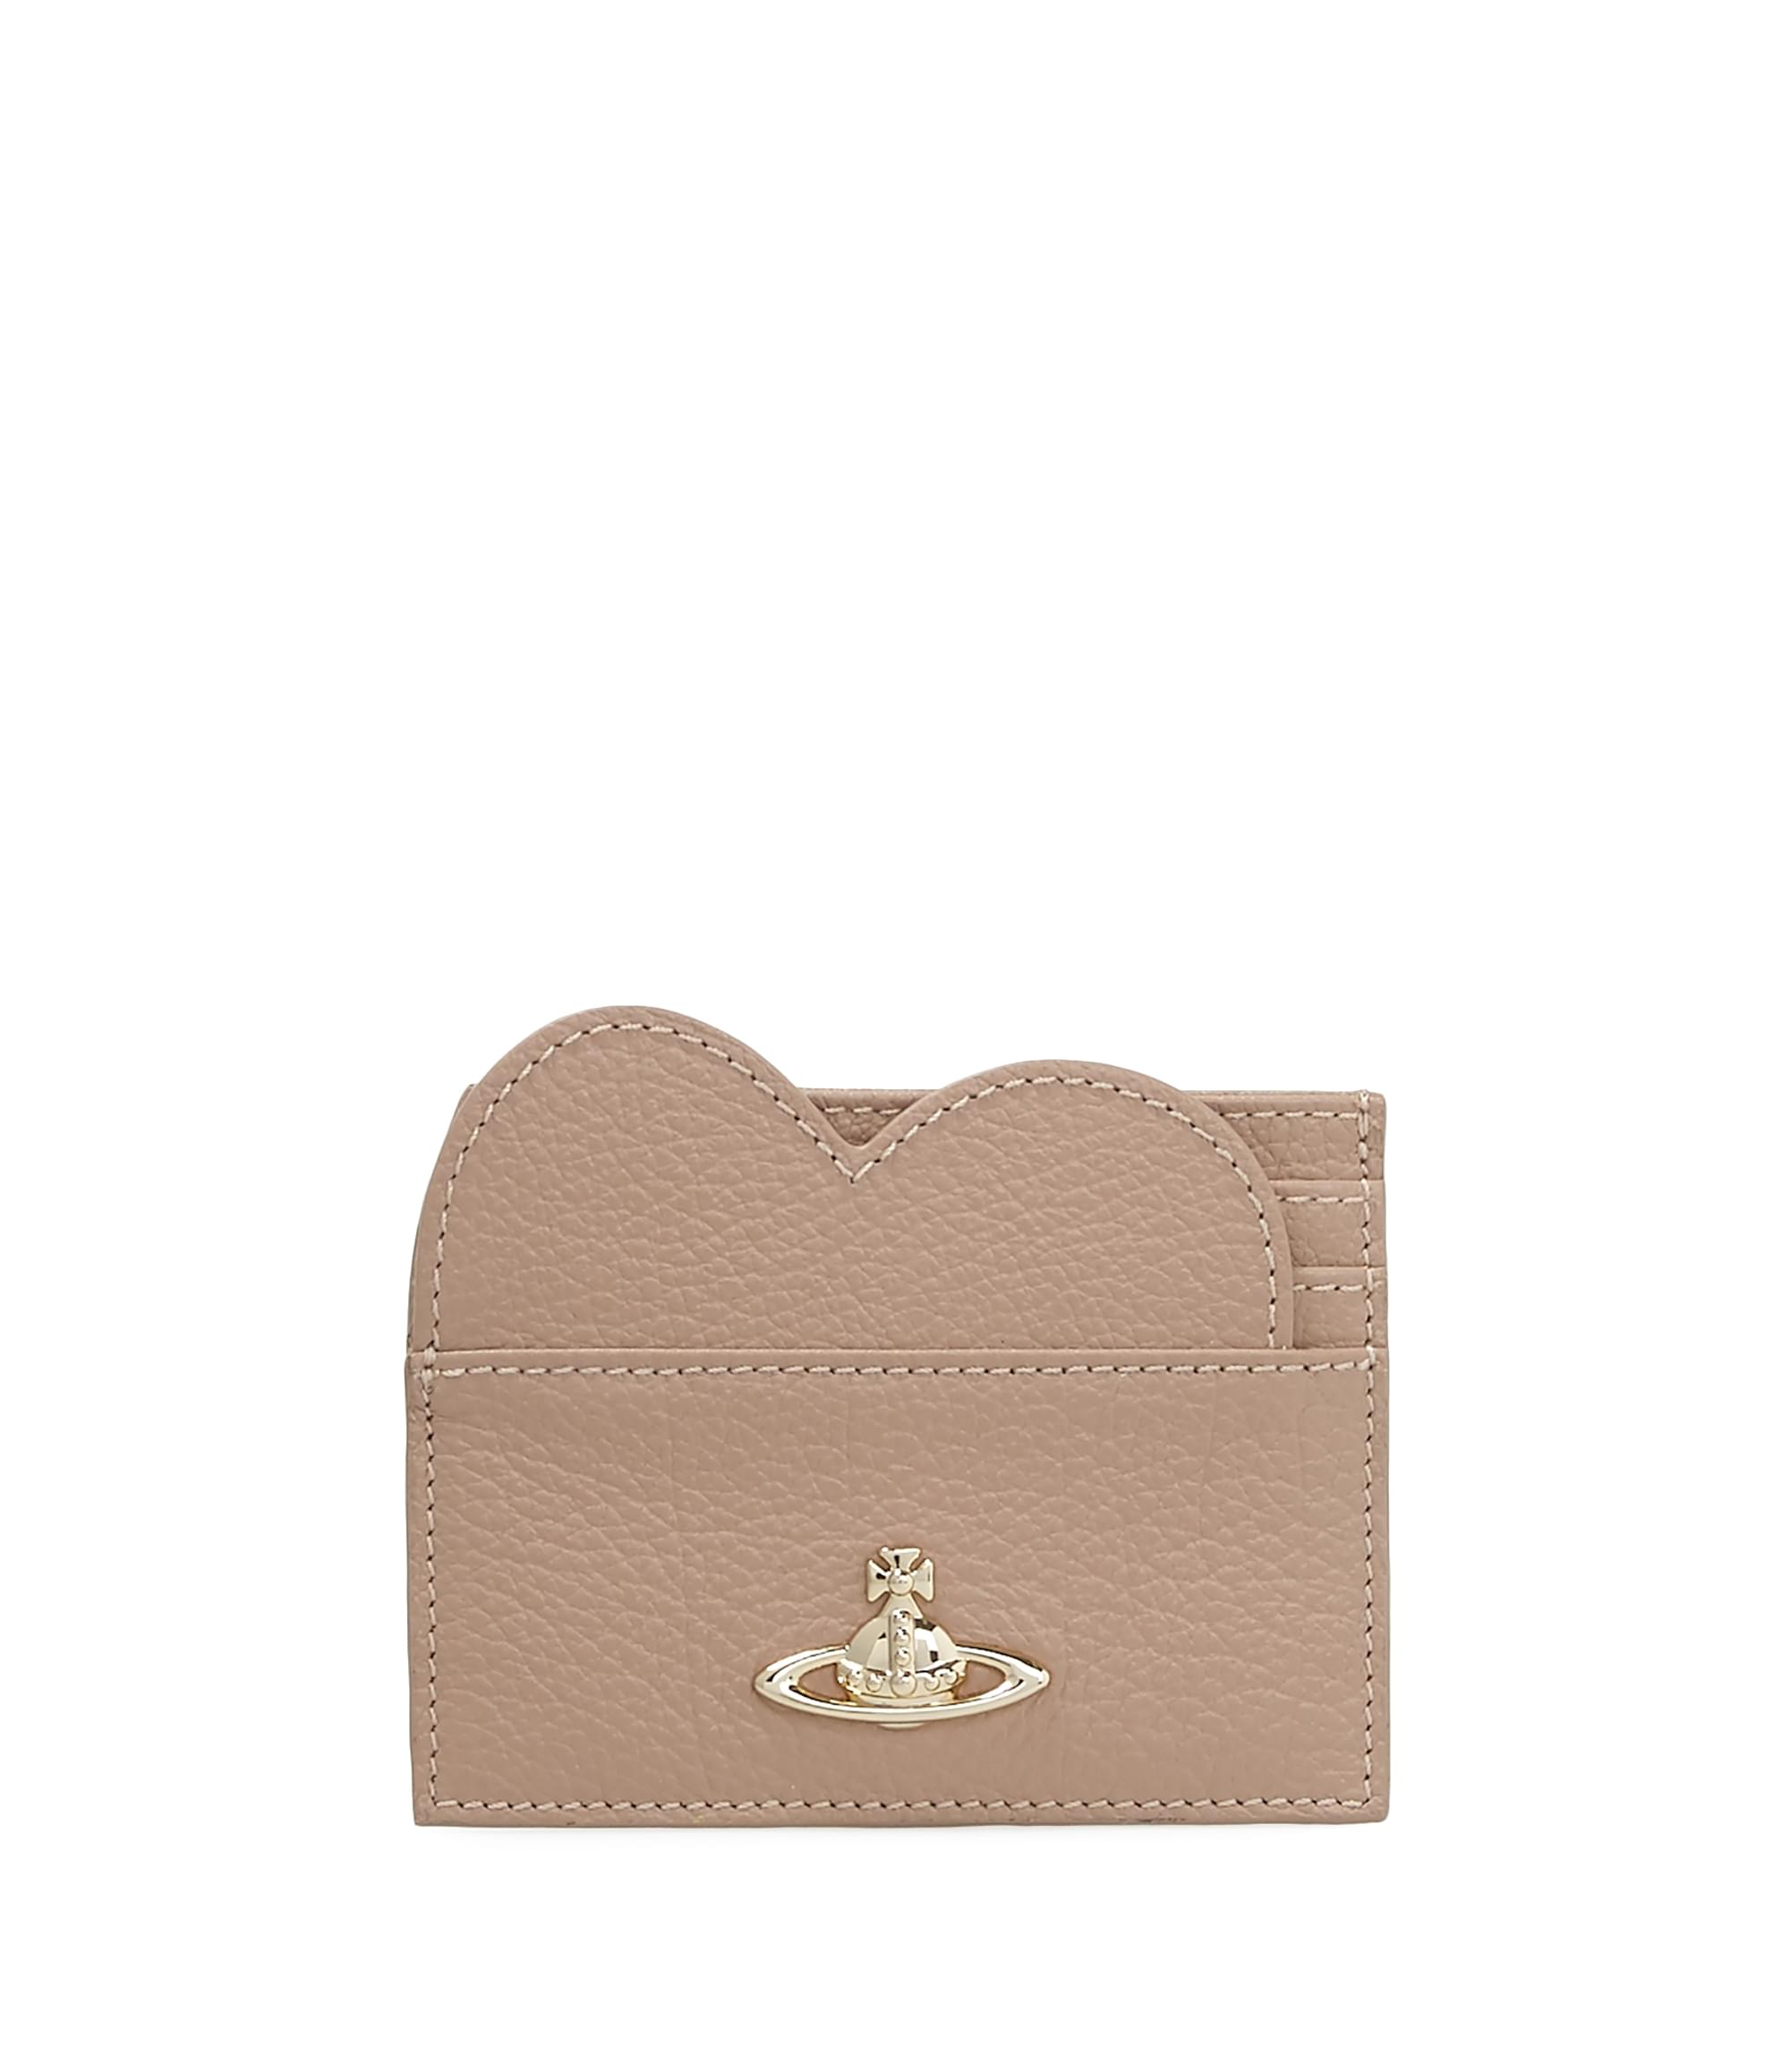 Vivienne Westwood Balmoral Heart Card Holder 321513 Beige